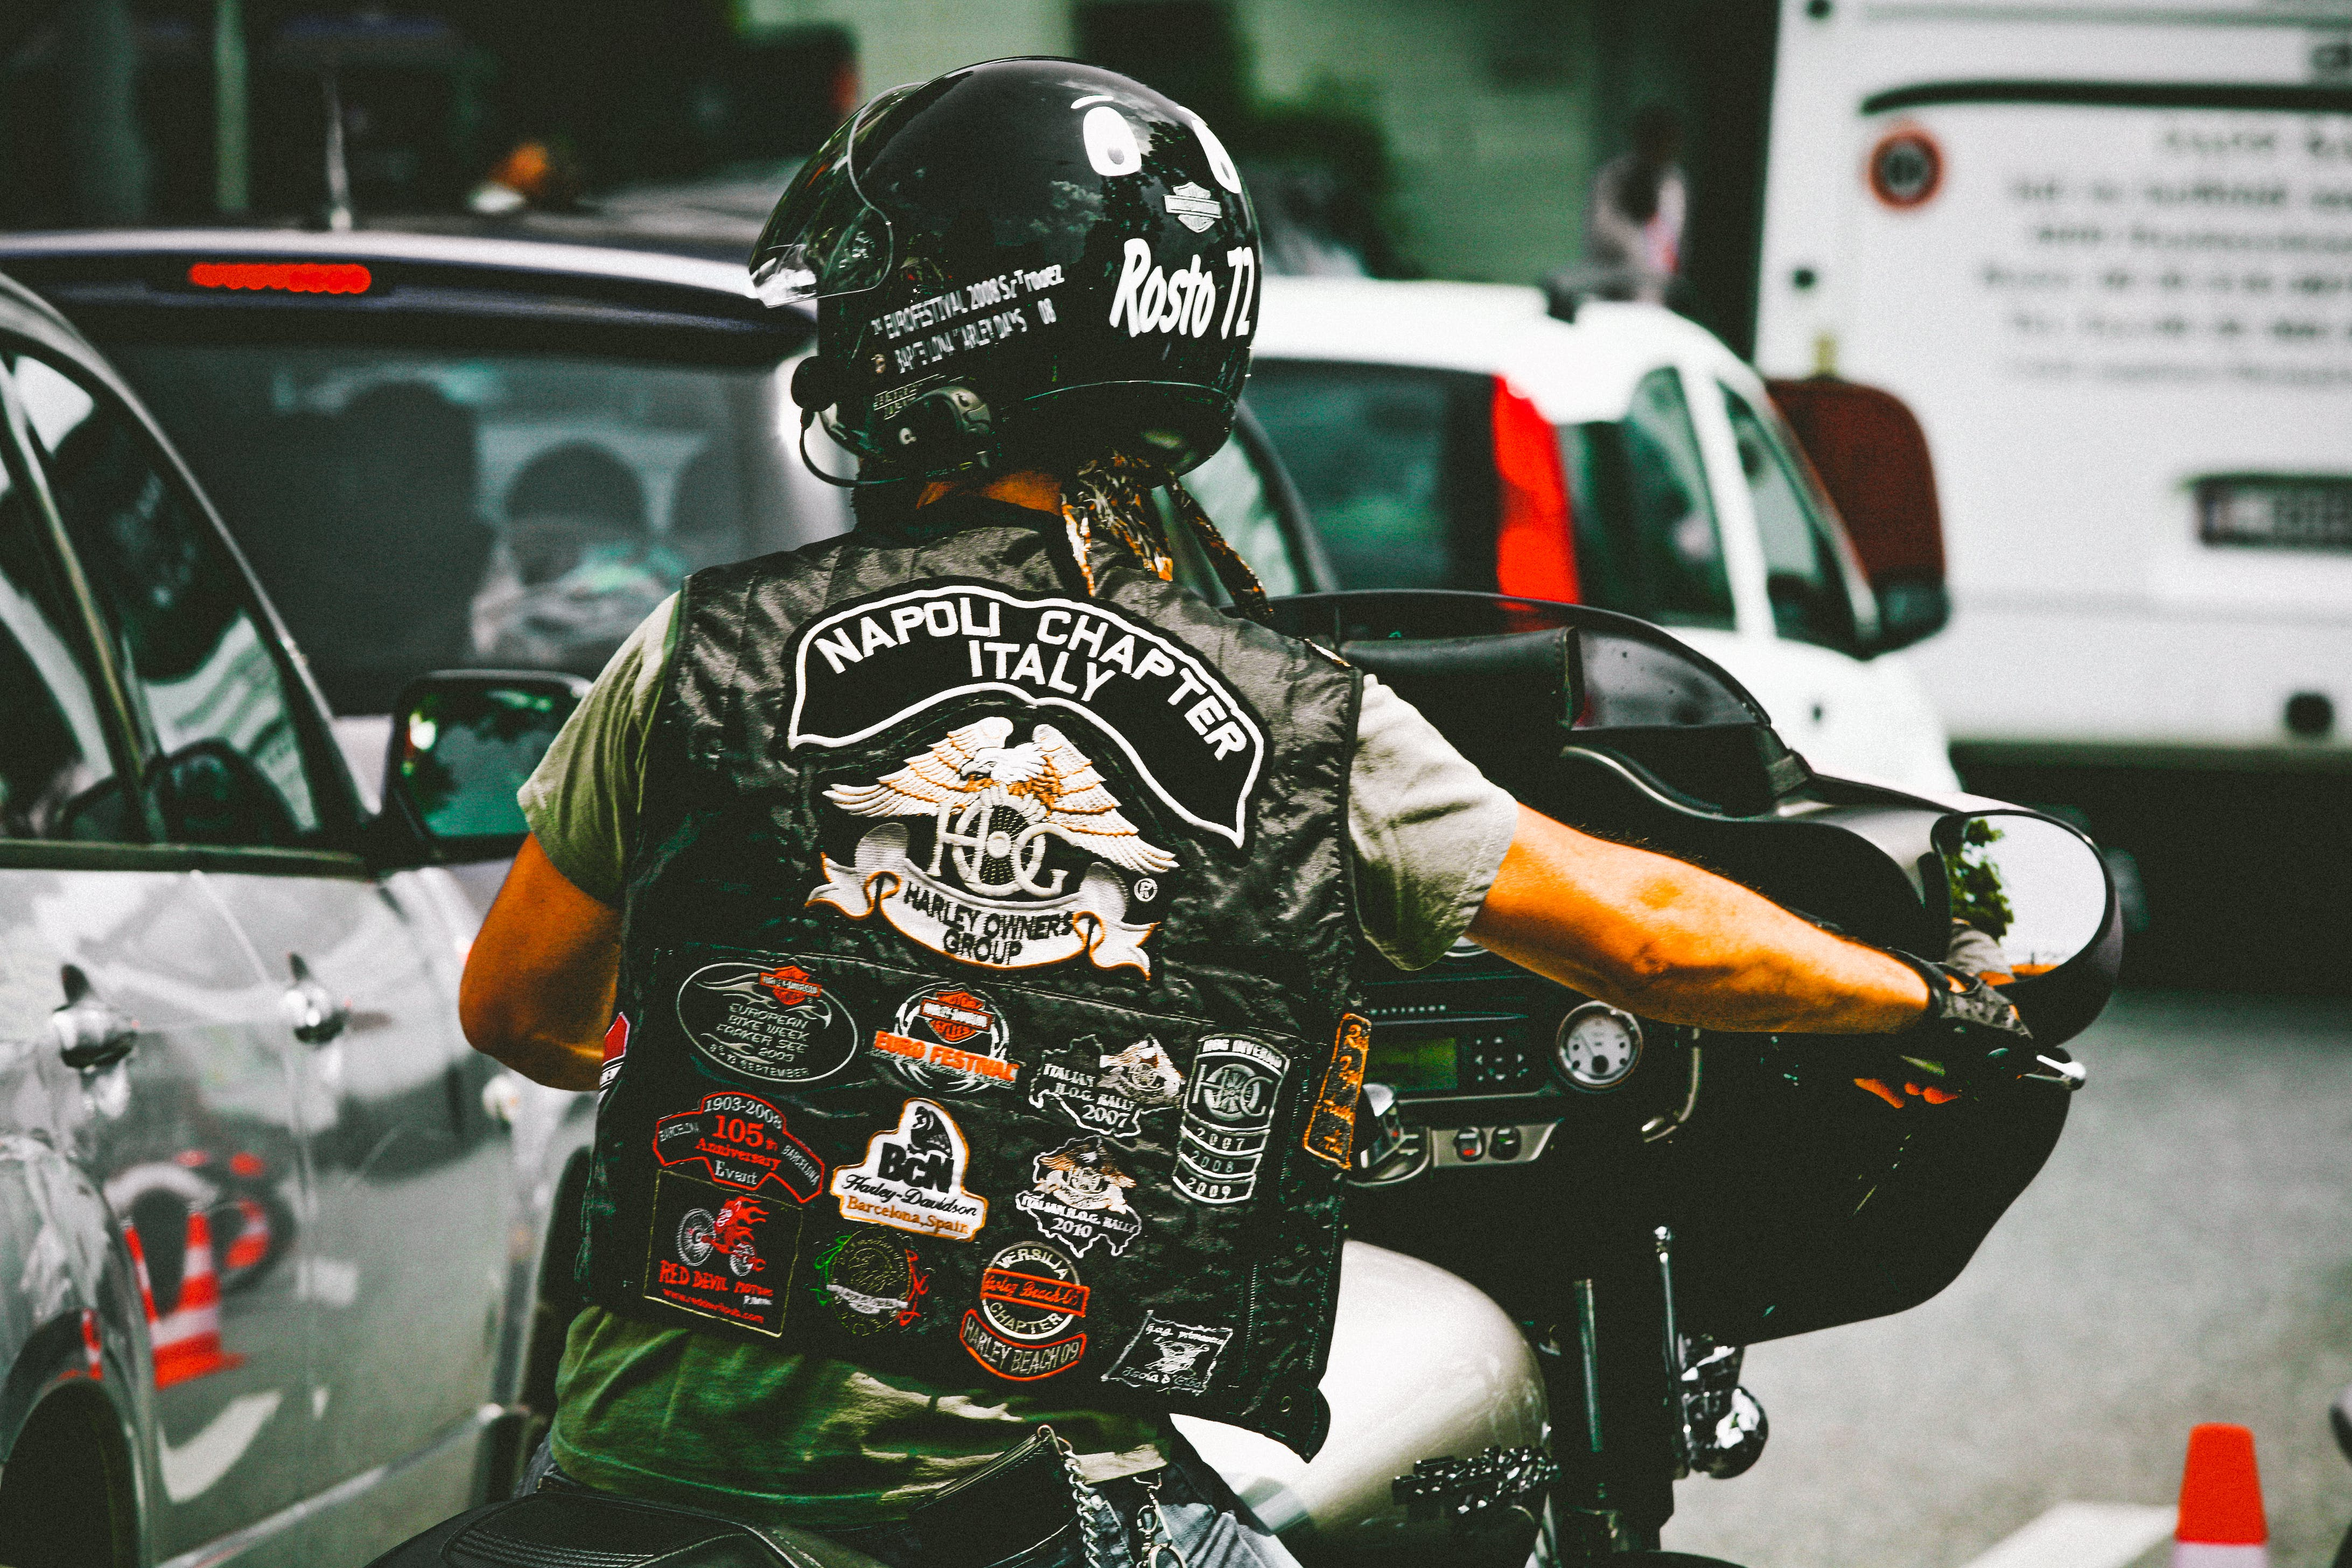 Photo of Person Riding Harley Davidson Motorcycle